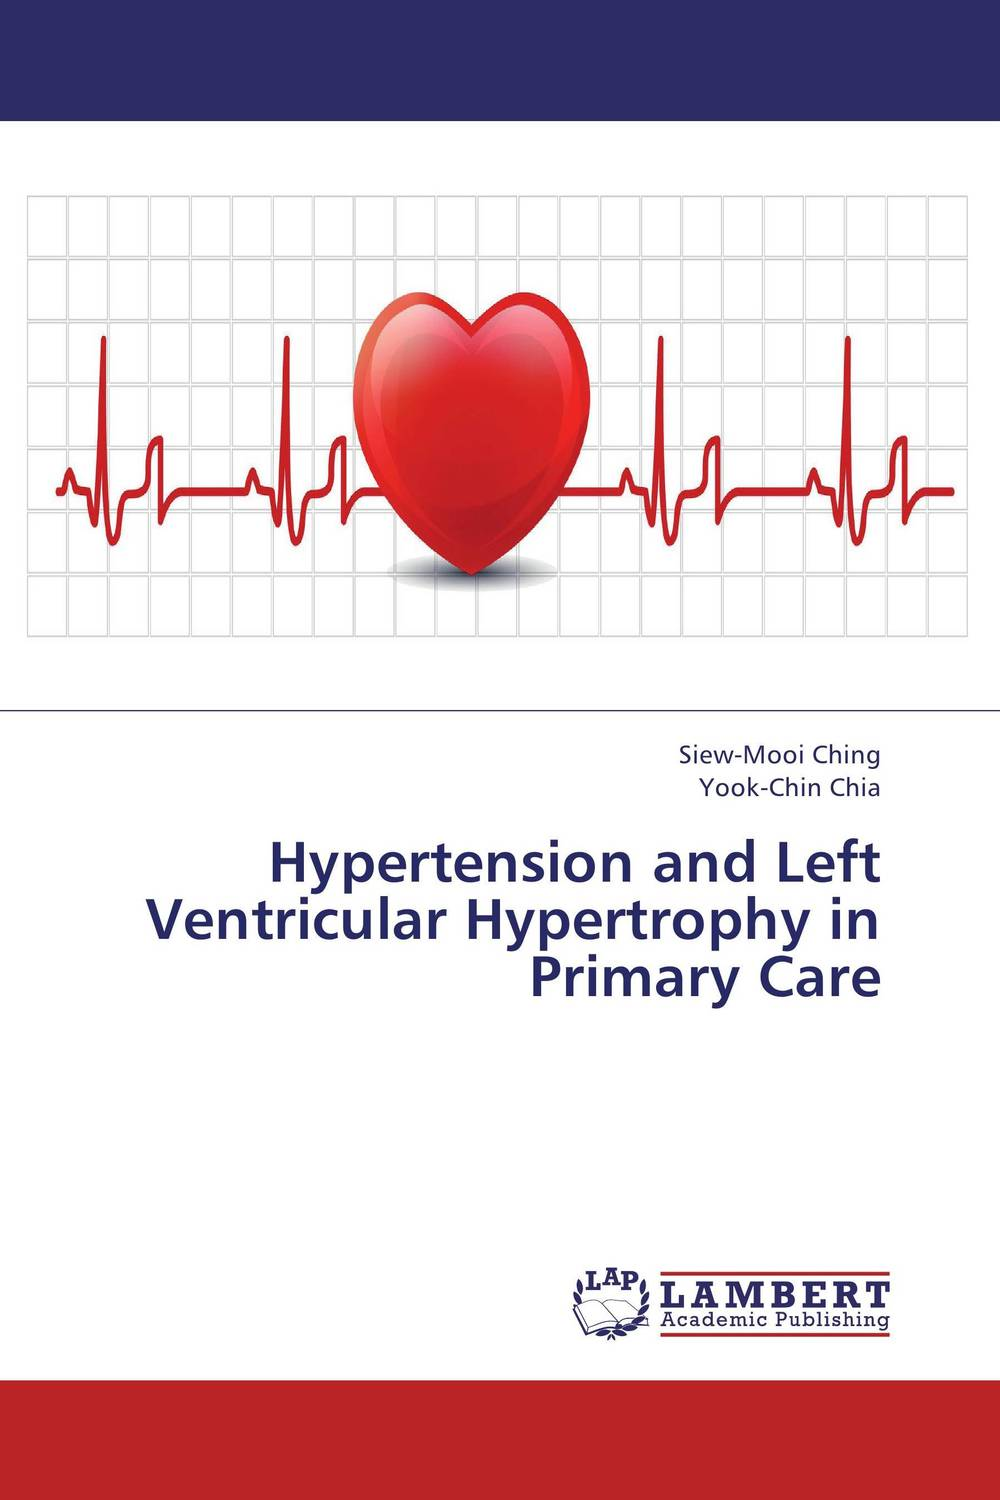 Hypertension and Left Ventricular Hypertrophy in Primary Care